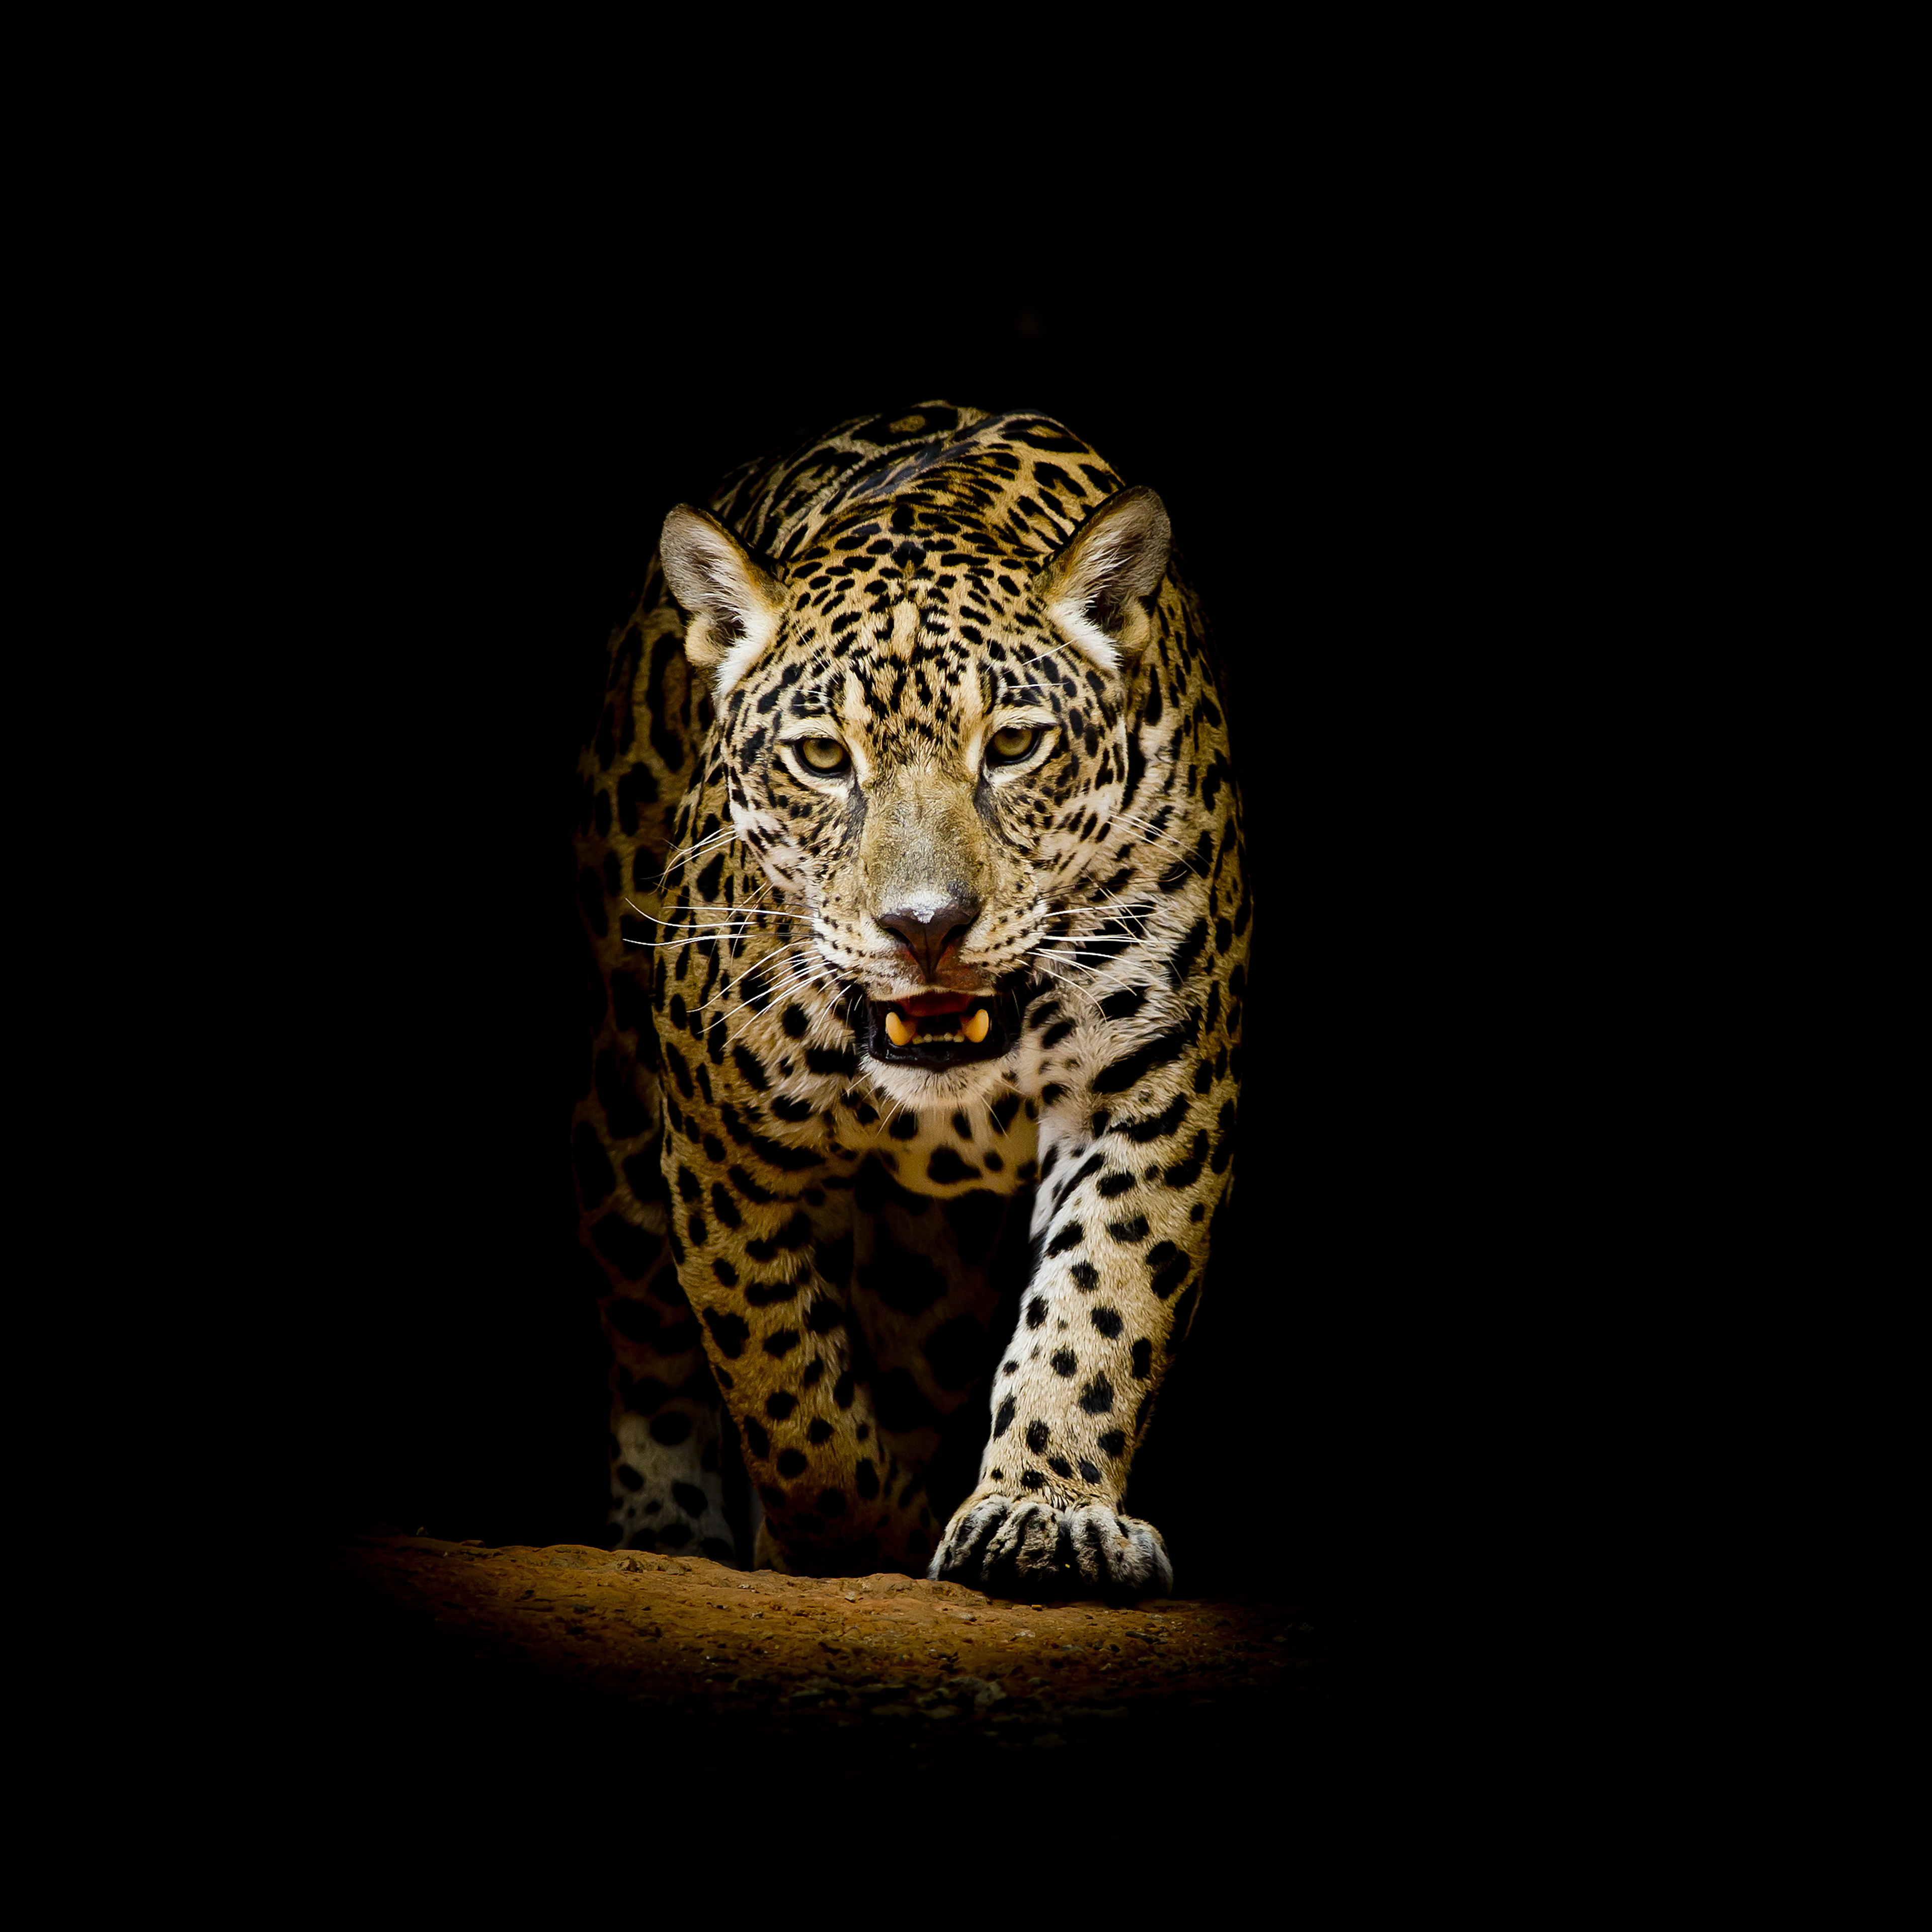 Leopard 4k Black Background, HD Animals, 4k Wallpapers ...